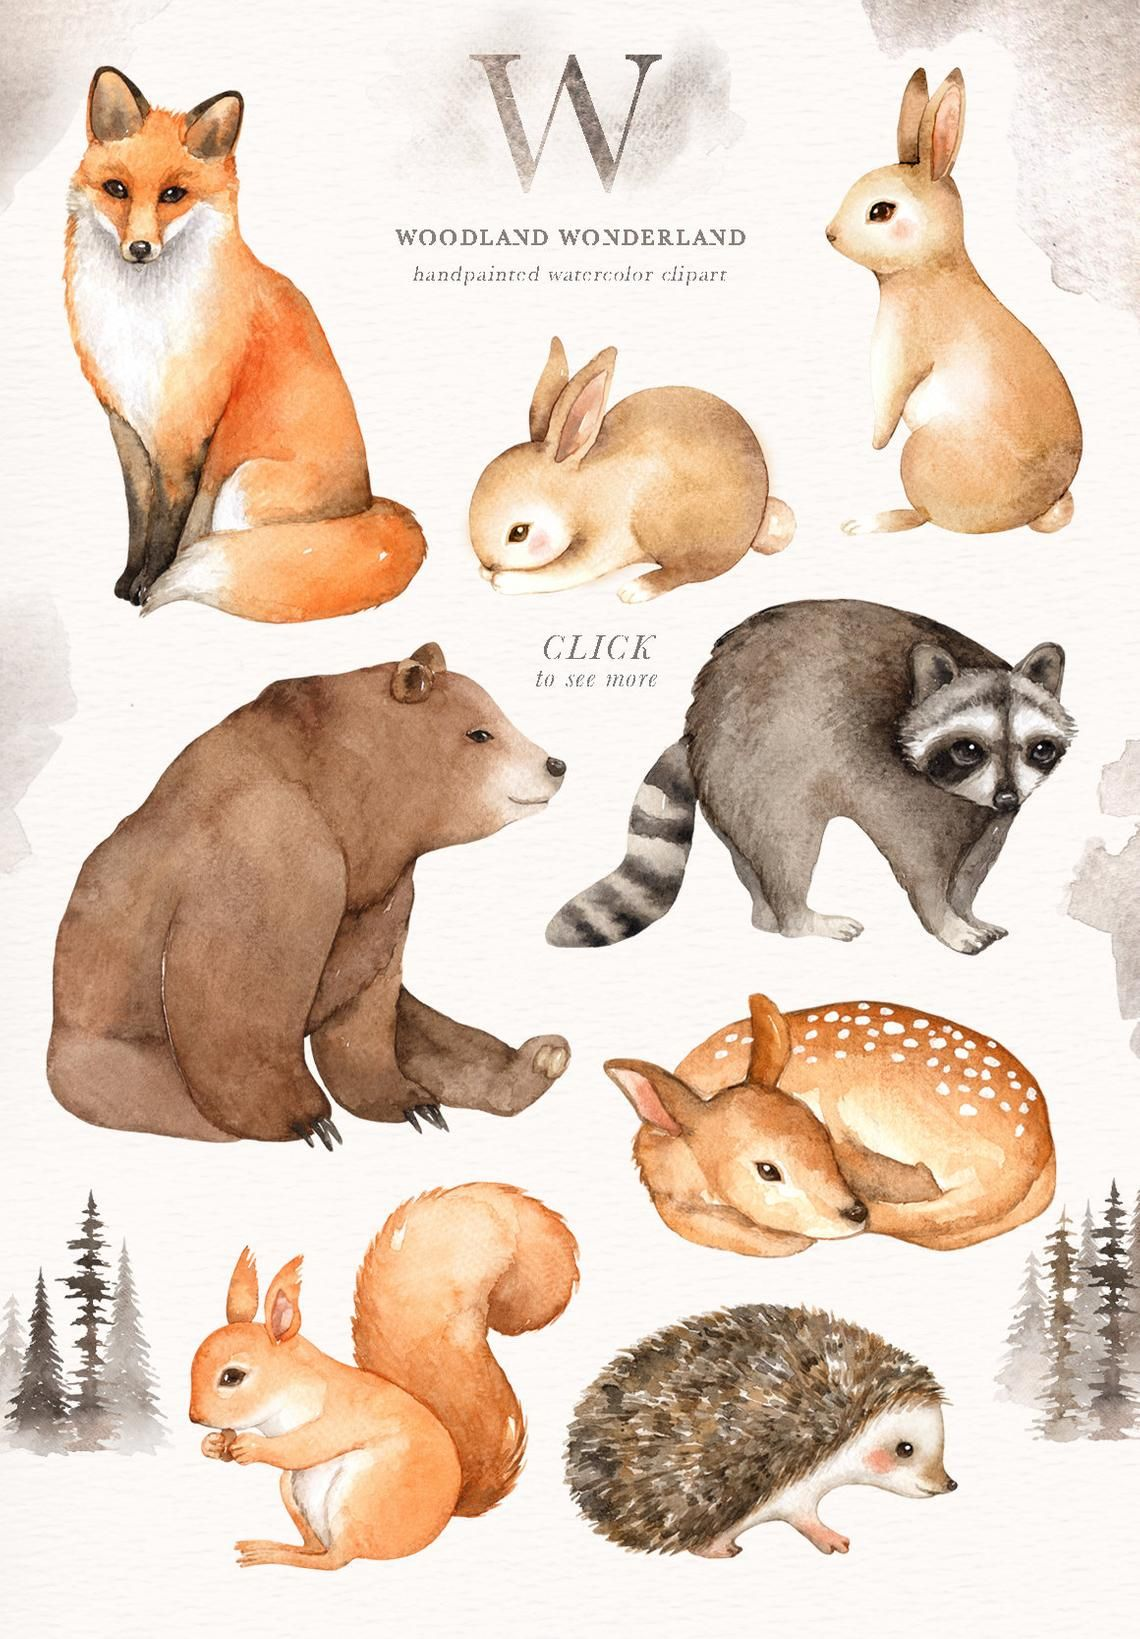 Woodland Wonderland Watercolor Clip Art, Woodland Animals, Kids Clipart,Boho Clipart, Nursery Decor, Animals clipart, fox deer rabbit bear is part of Woodland Wonderland Watercolor Clip Art Woodland Animals - 496922207 The Limited Commercial License NO Credit required gives you the right to use purchased item at Everysunsun in products for sale (500 copies sold or less)   Thank you for visiting! Please feel free to contact me for any questions